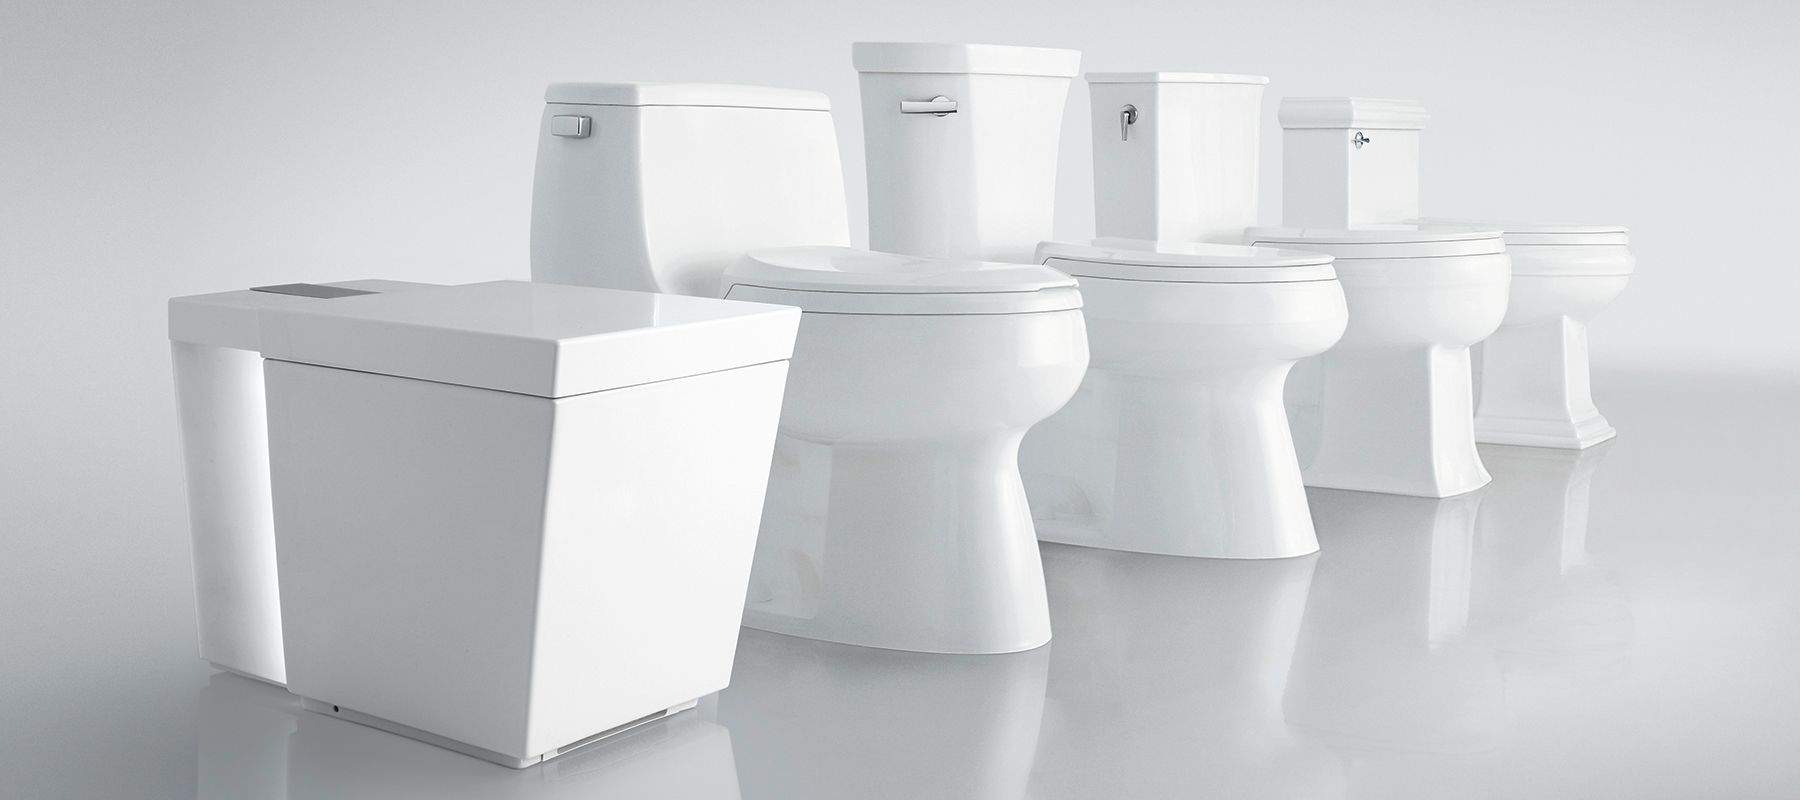 Best Kohler Toilets In 2019 Reviews Amp Complete Buying Guide